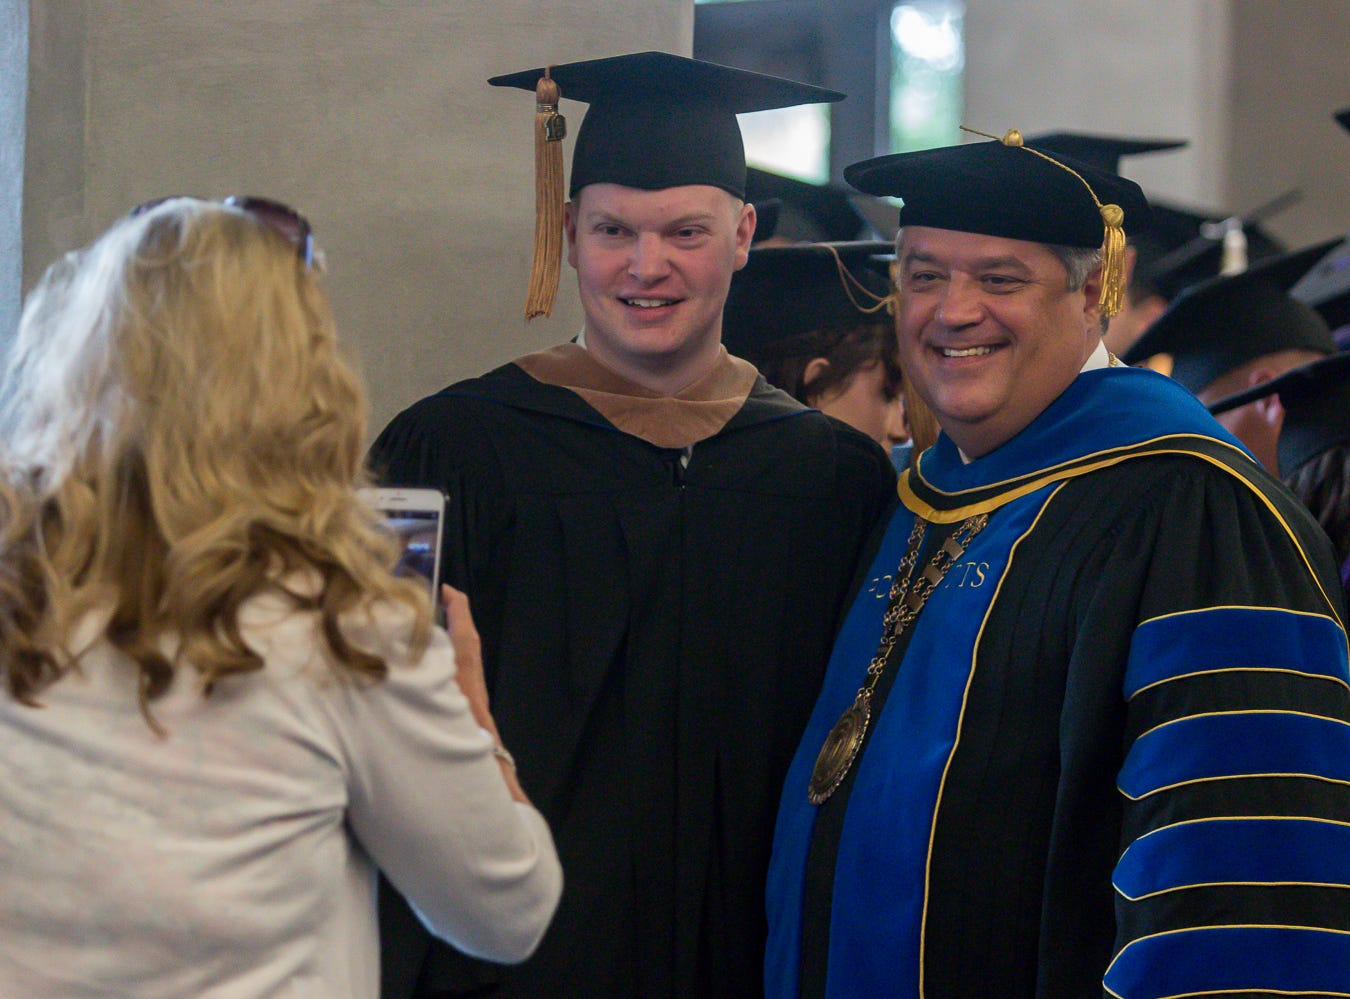 Pensacola Christian College President Dr. Troy Shoemaker, right, poses for a photo on Friday, May 10, 2019, before the school's 44th commencement ceremony.